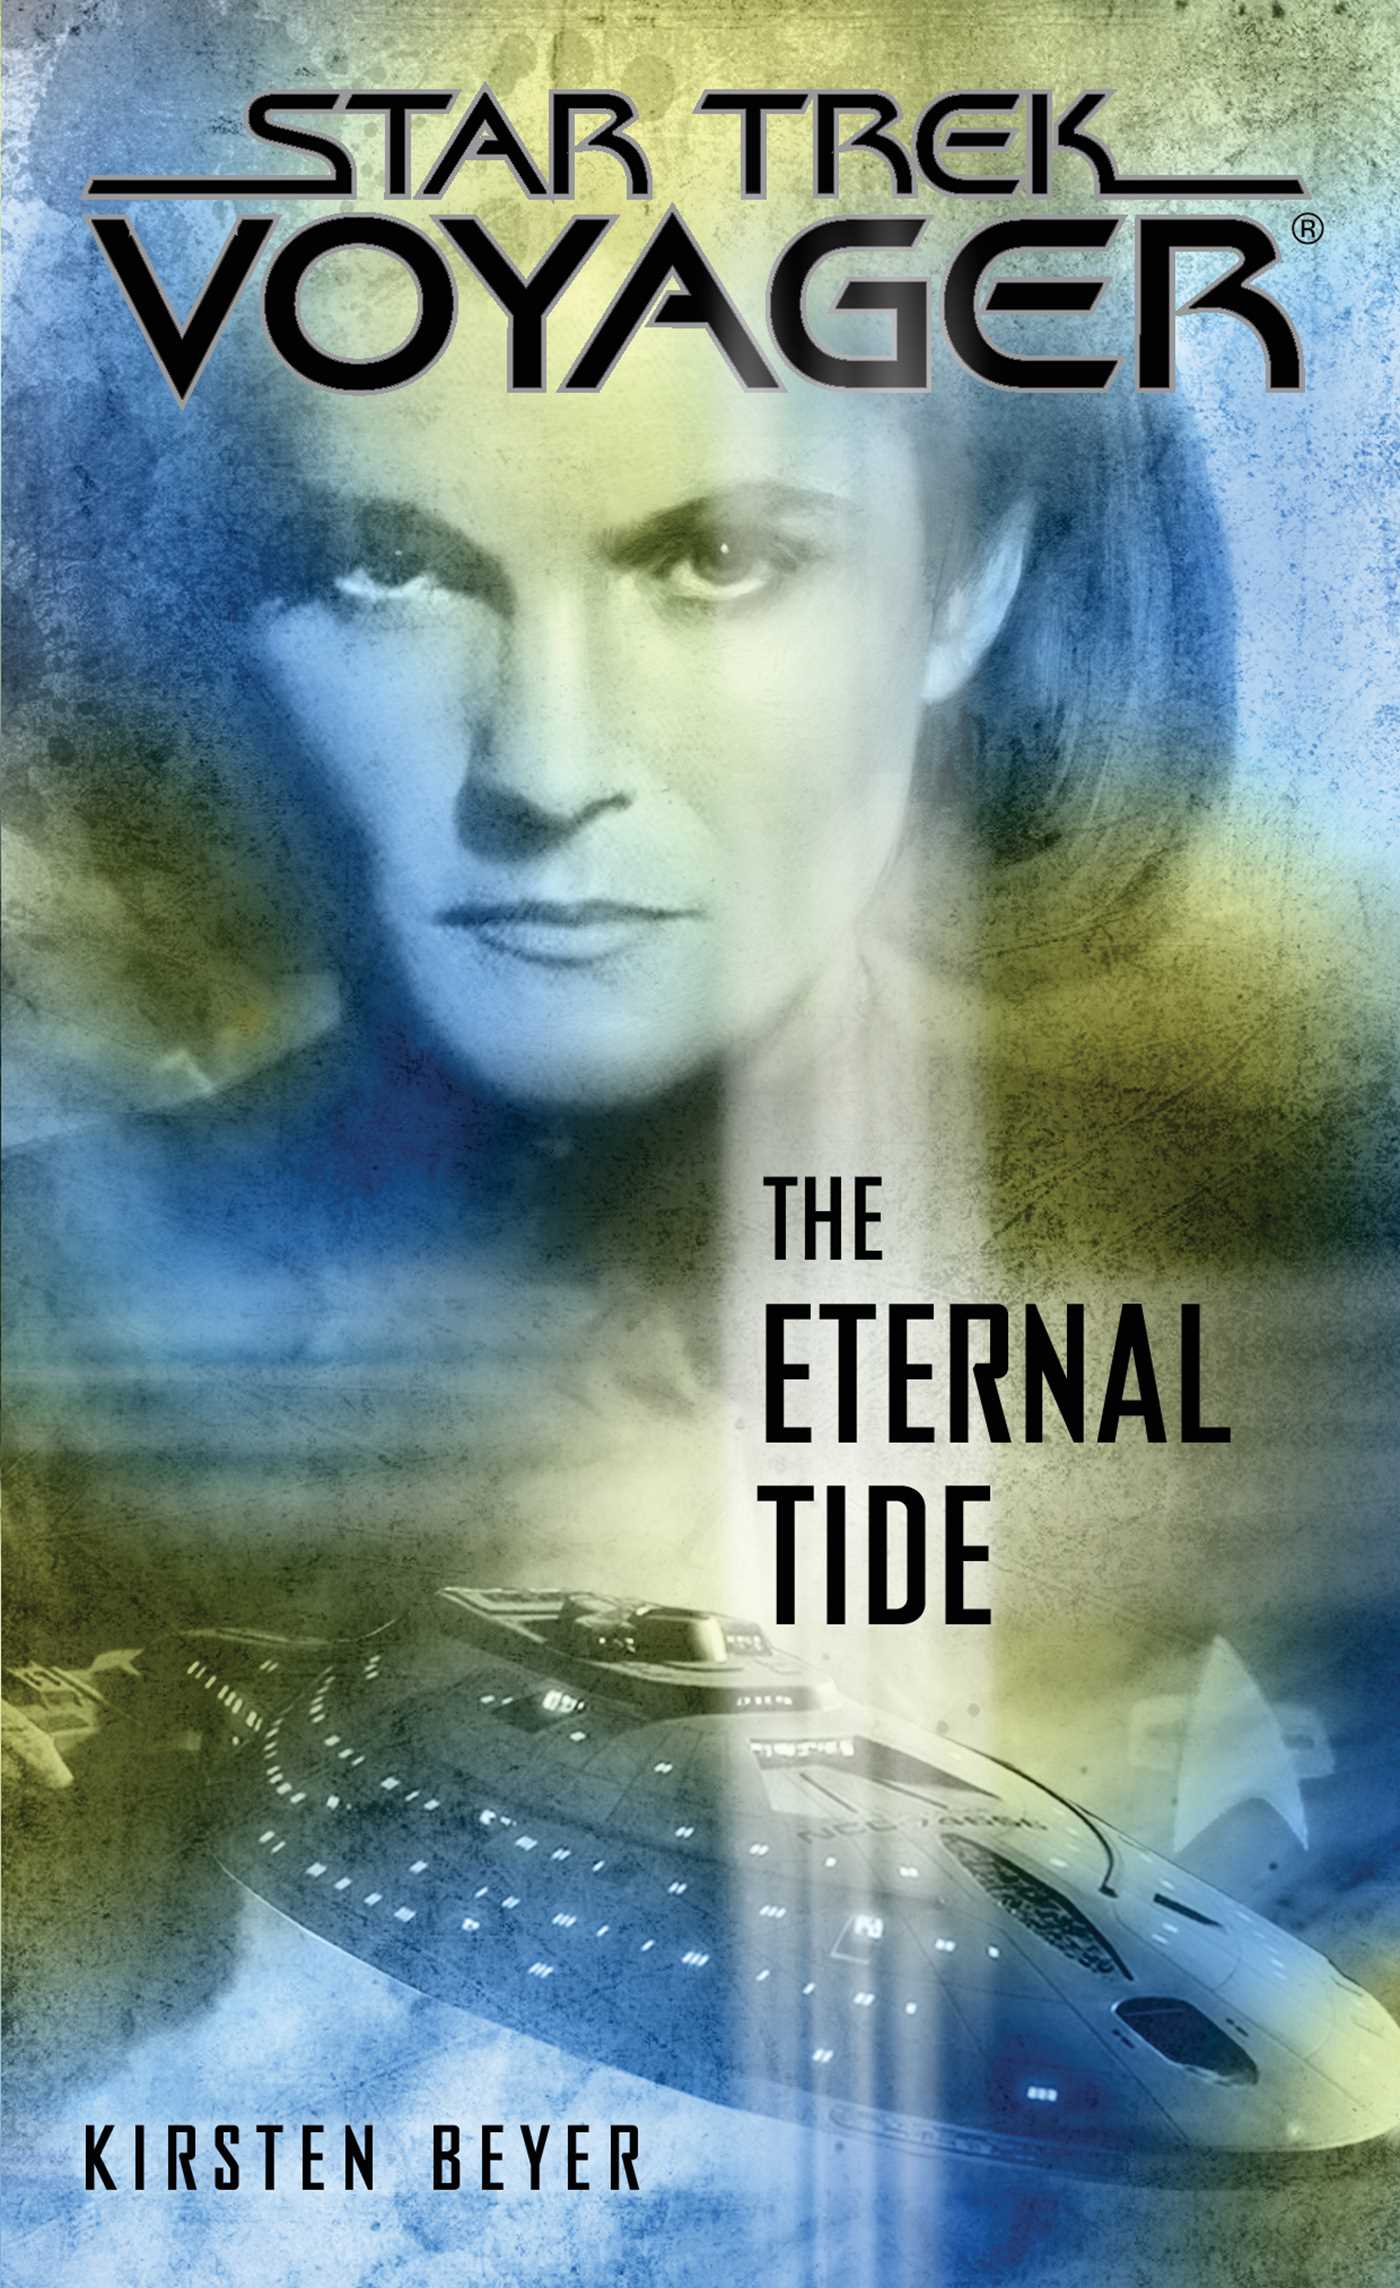 Star-trek-voyager-the-eternal-tide-9781451668186_hr